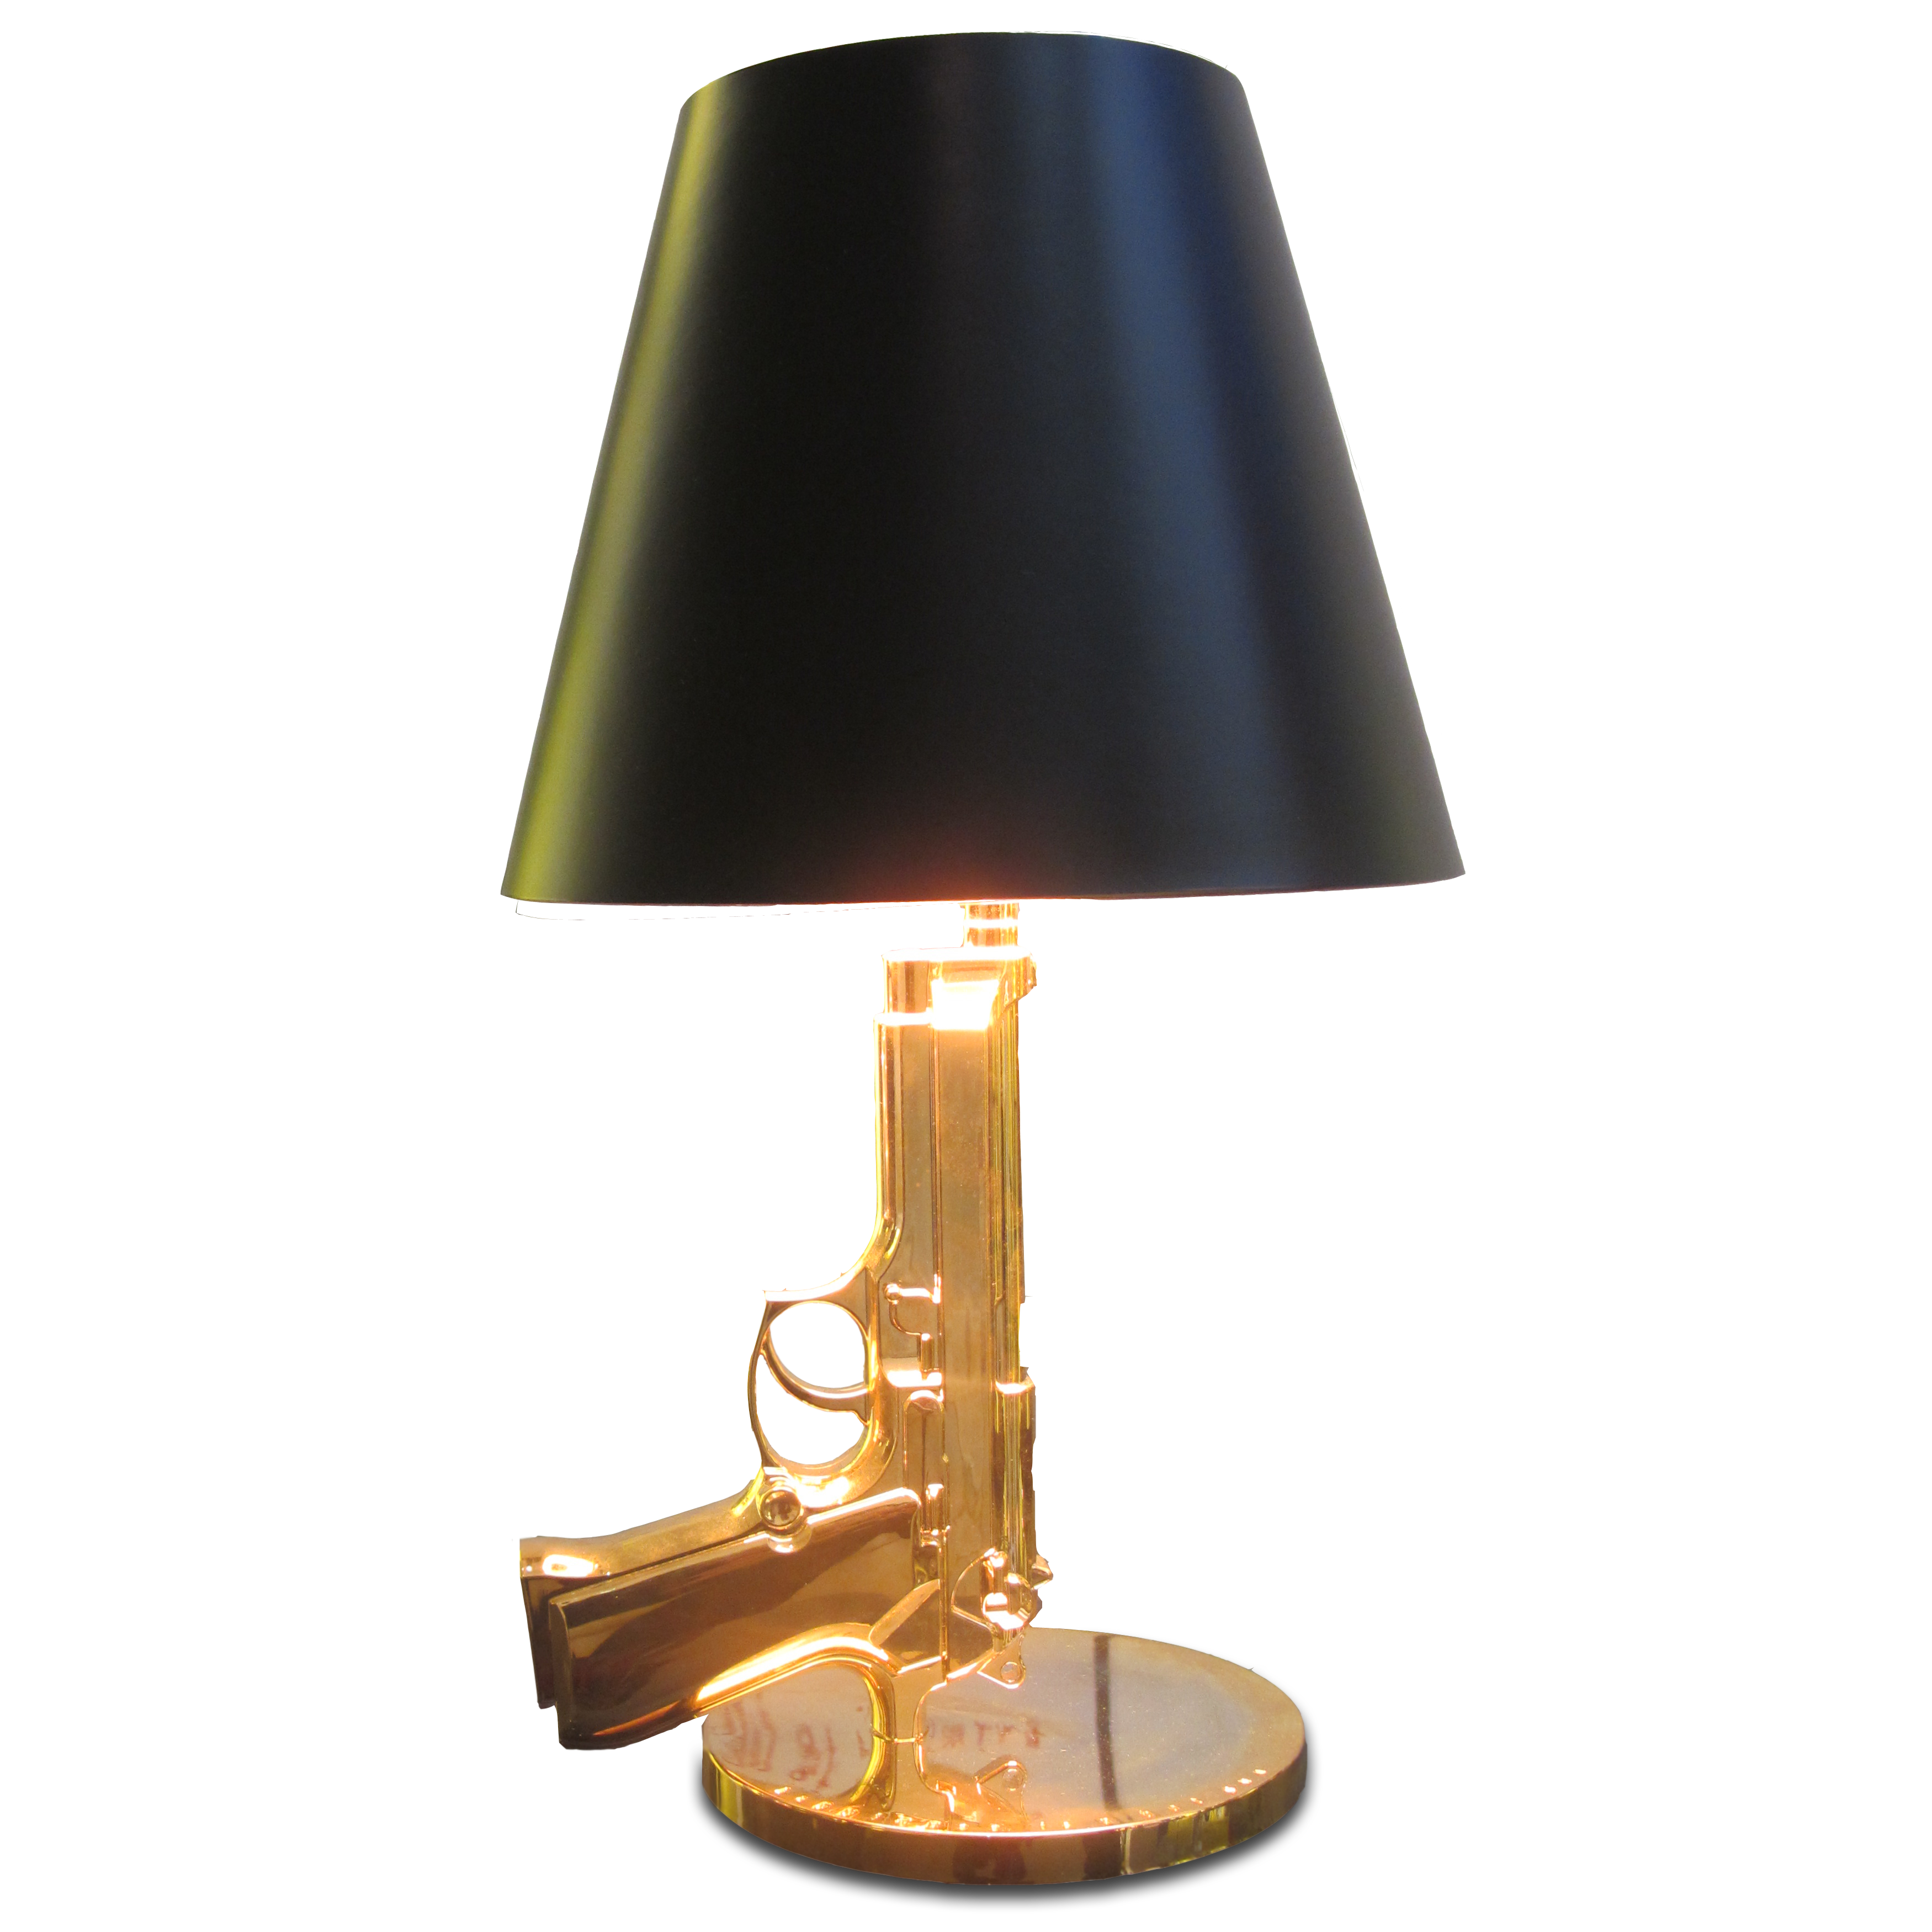 Gun Shape Home Decorative Table Lamp Hotel Project Light Made In China